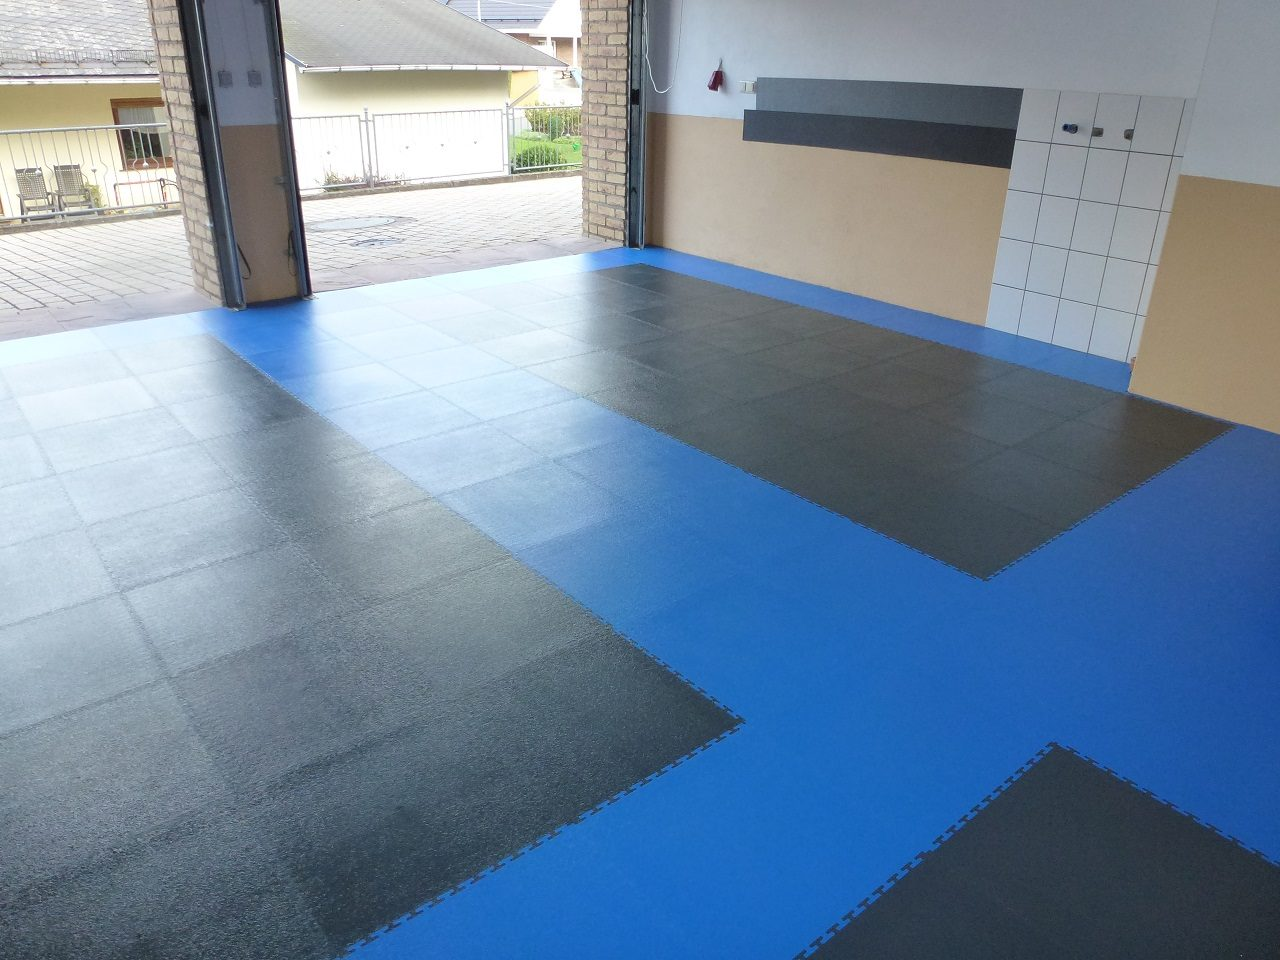 pvc garage floor with click system of tiles pvc flooring for the garage j ger plastik. Black Bedroom Furniture Sets. Home Design Ideas